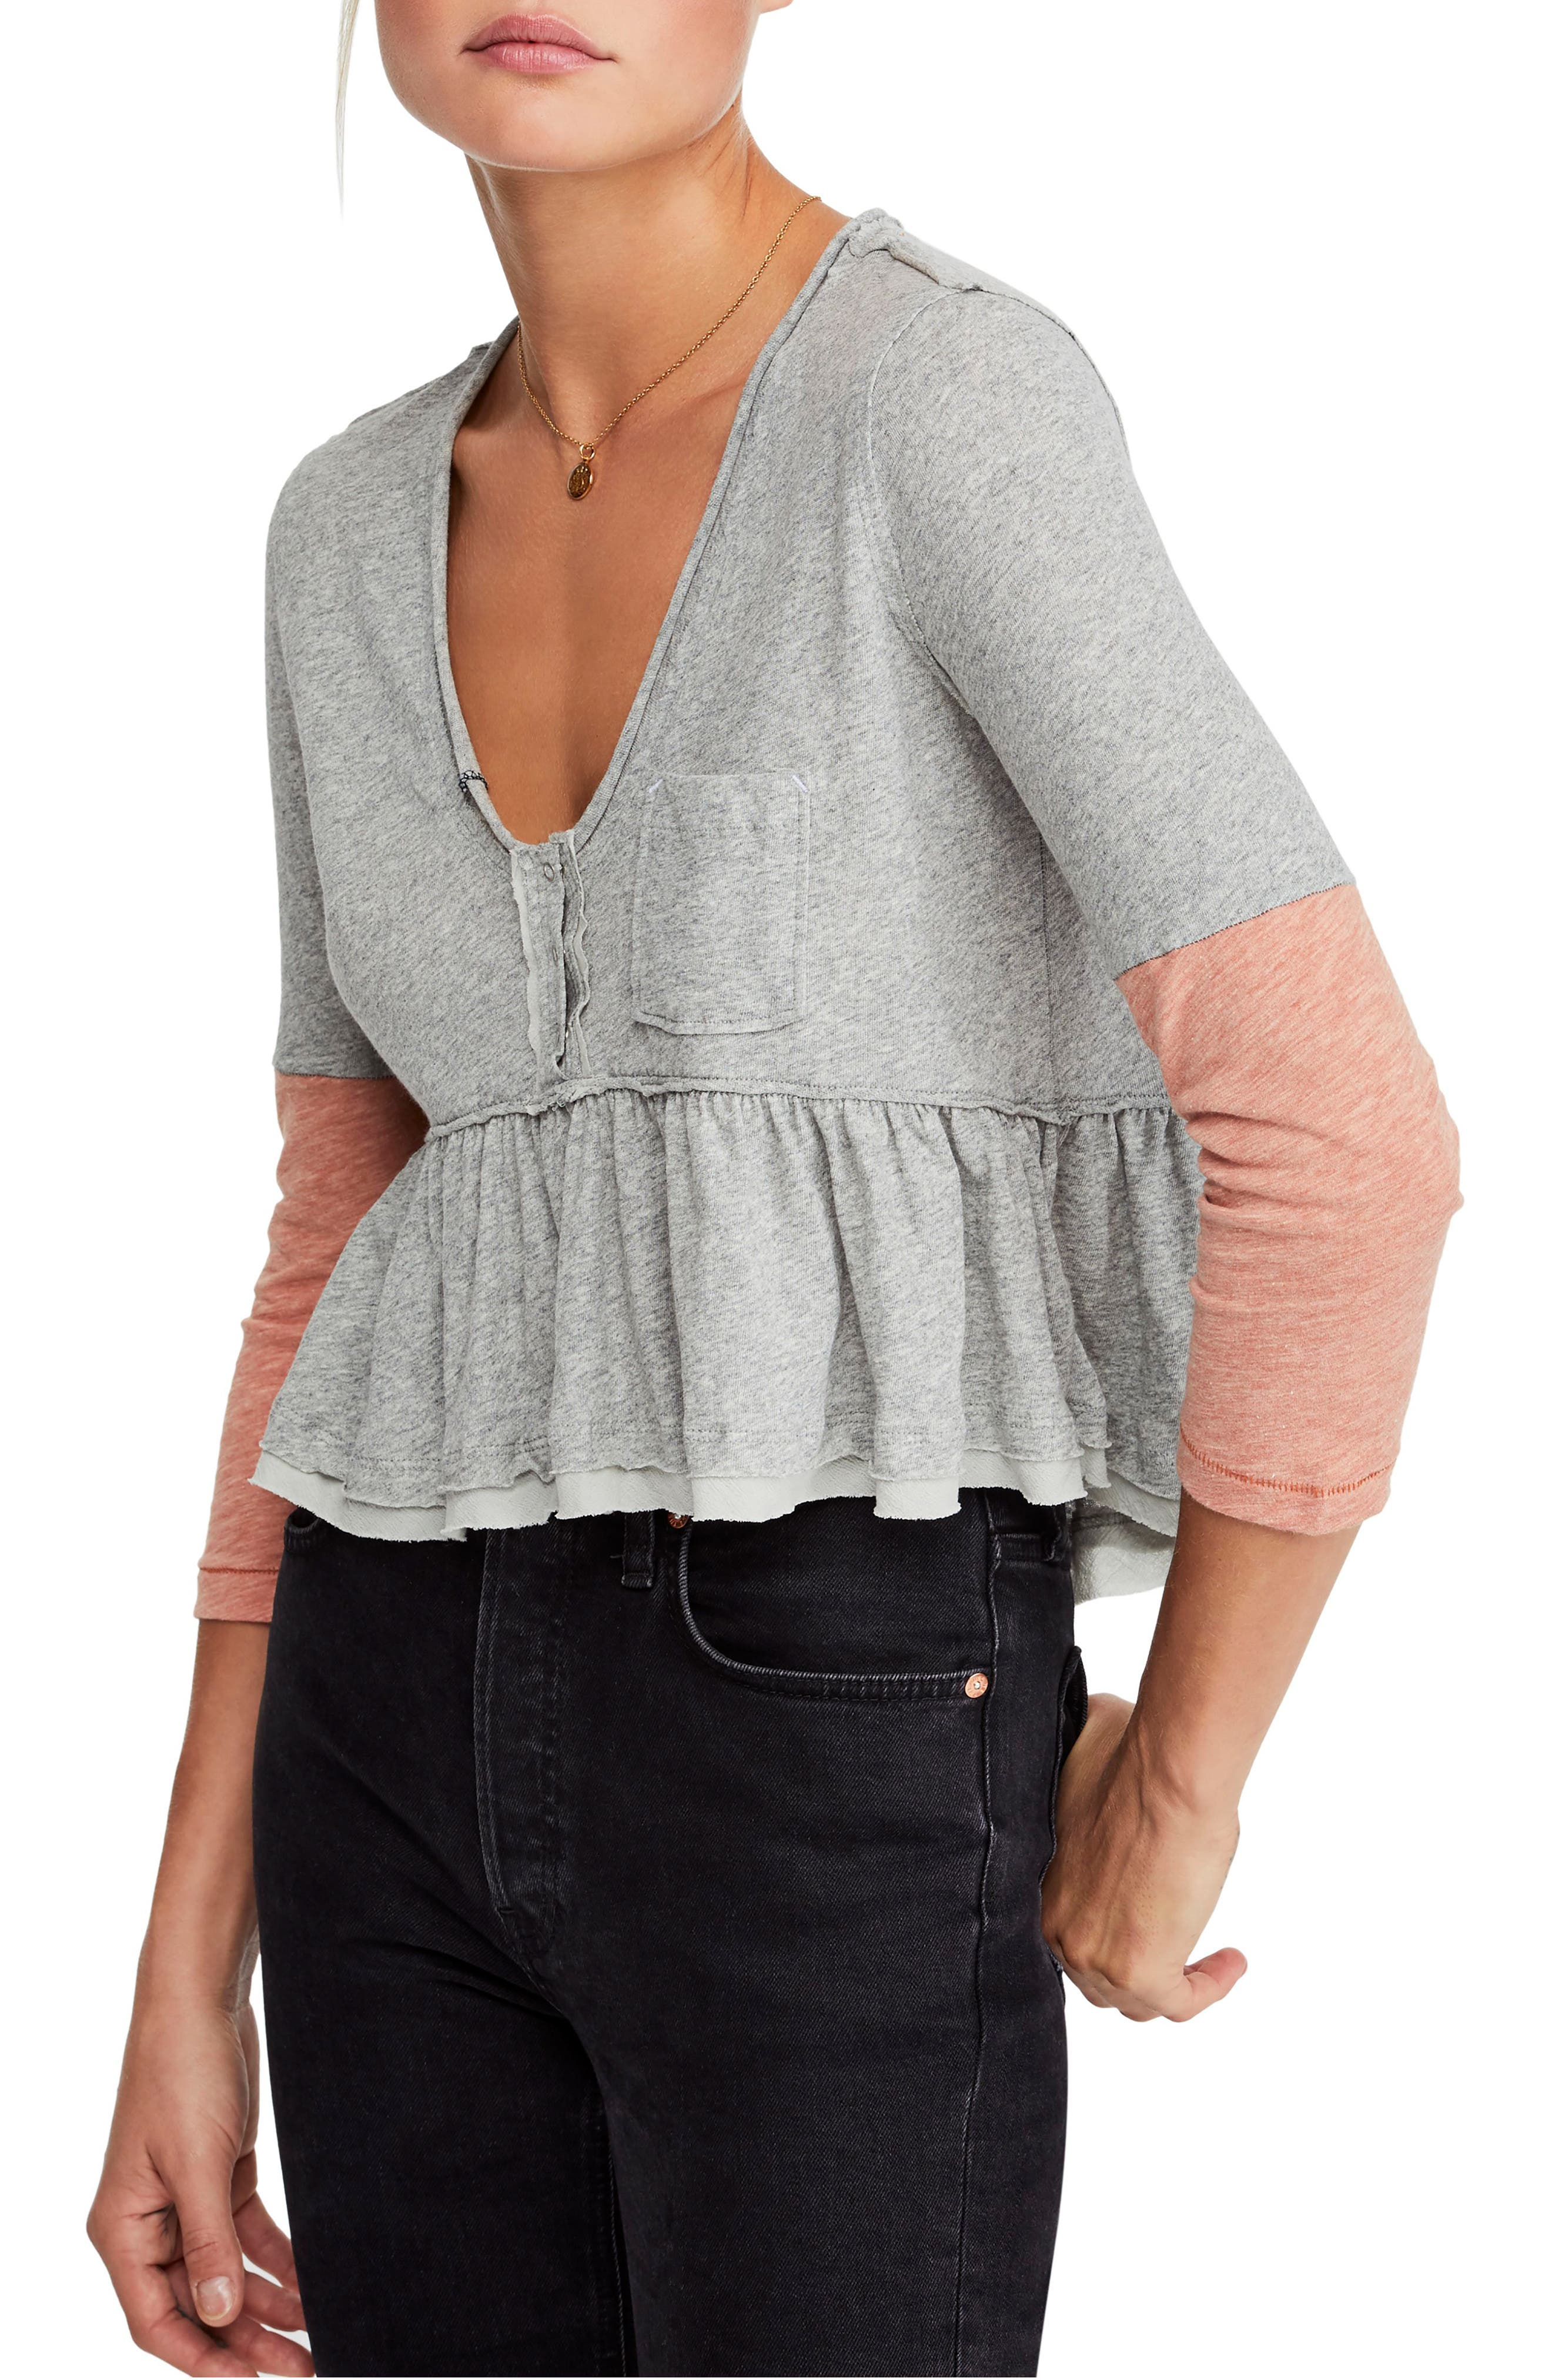 FREE PEOPLE, Heart of Mine Colorblock Cotton Top, Main thumbnail 1, color, 030